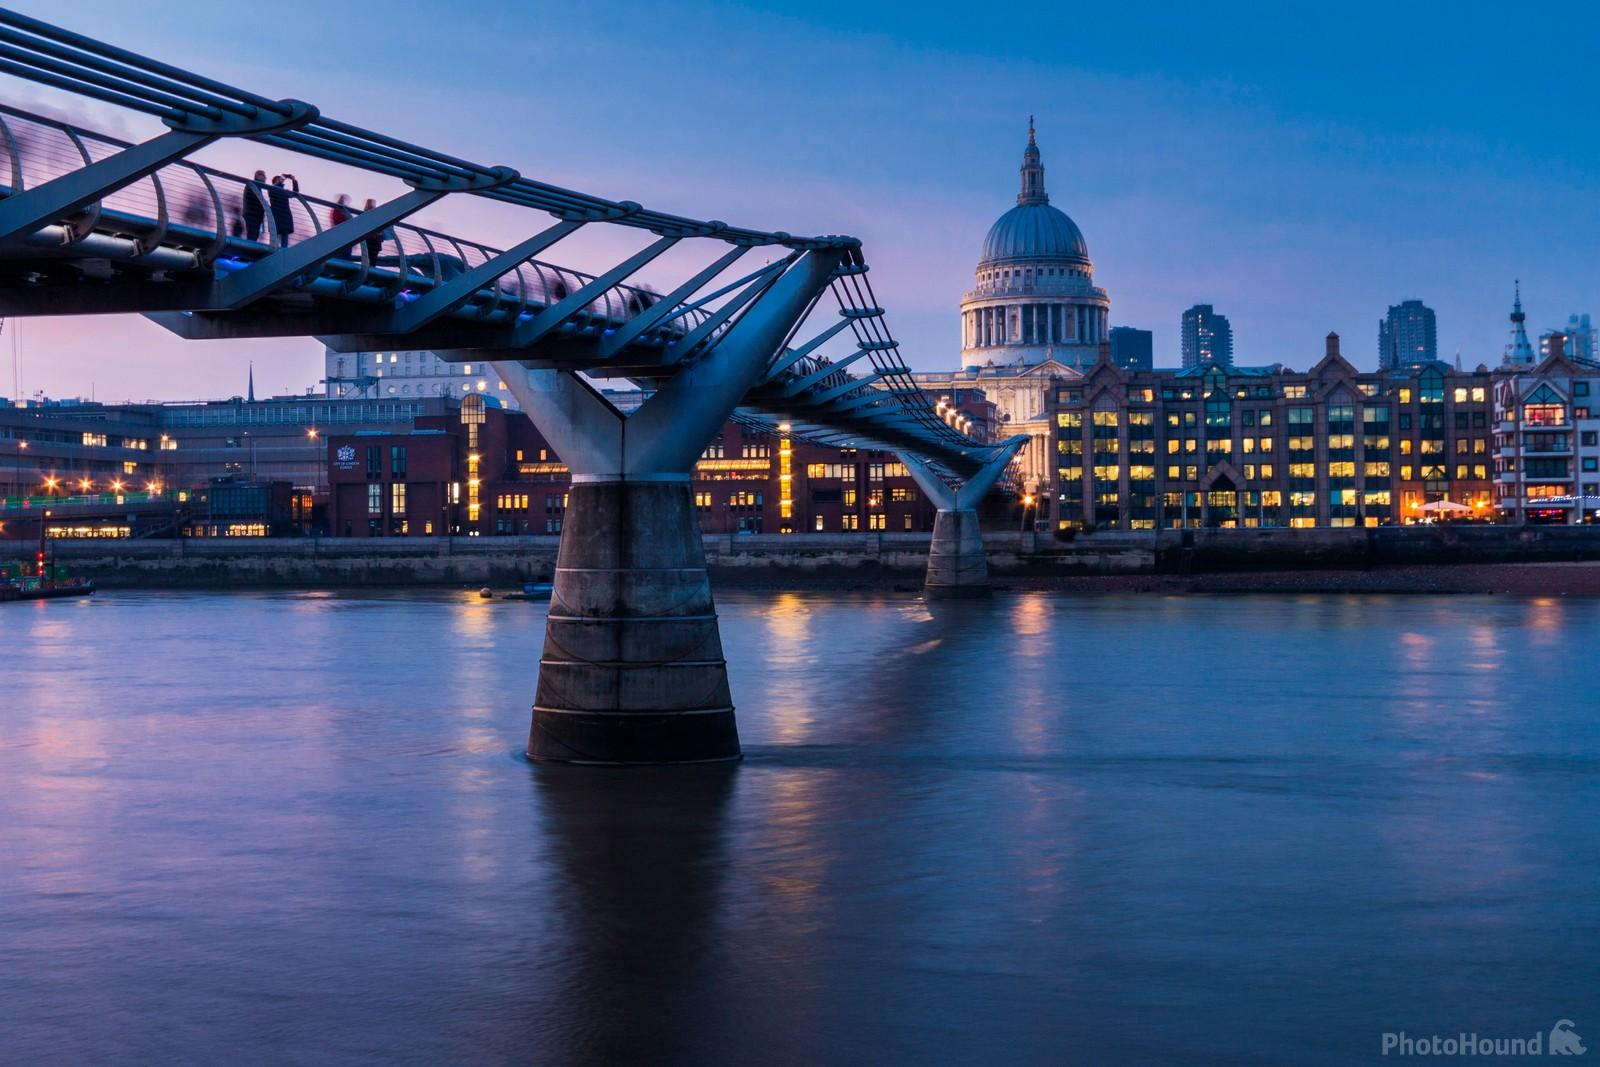 View of St Paul's from Milleniu Bridge at blue hour